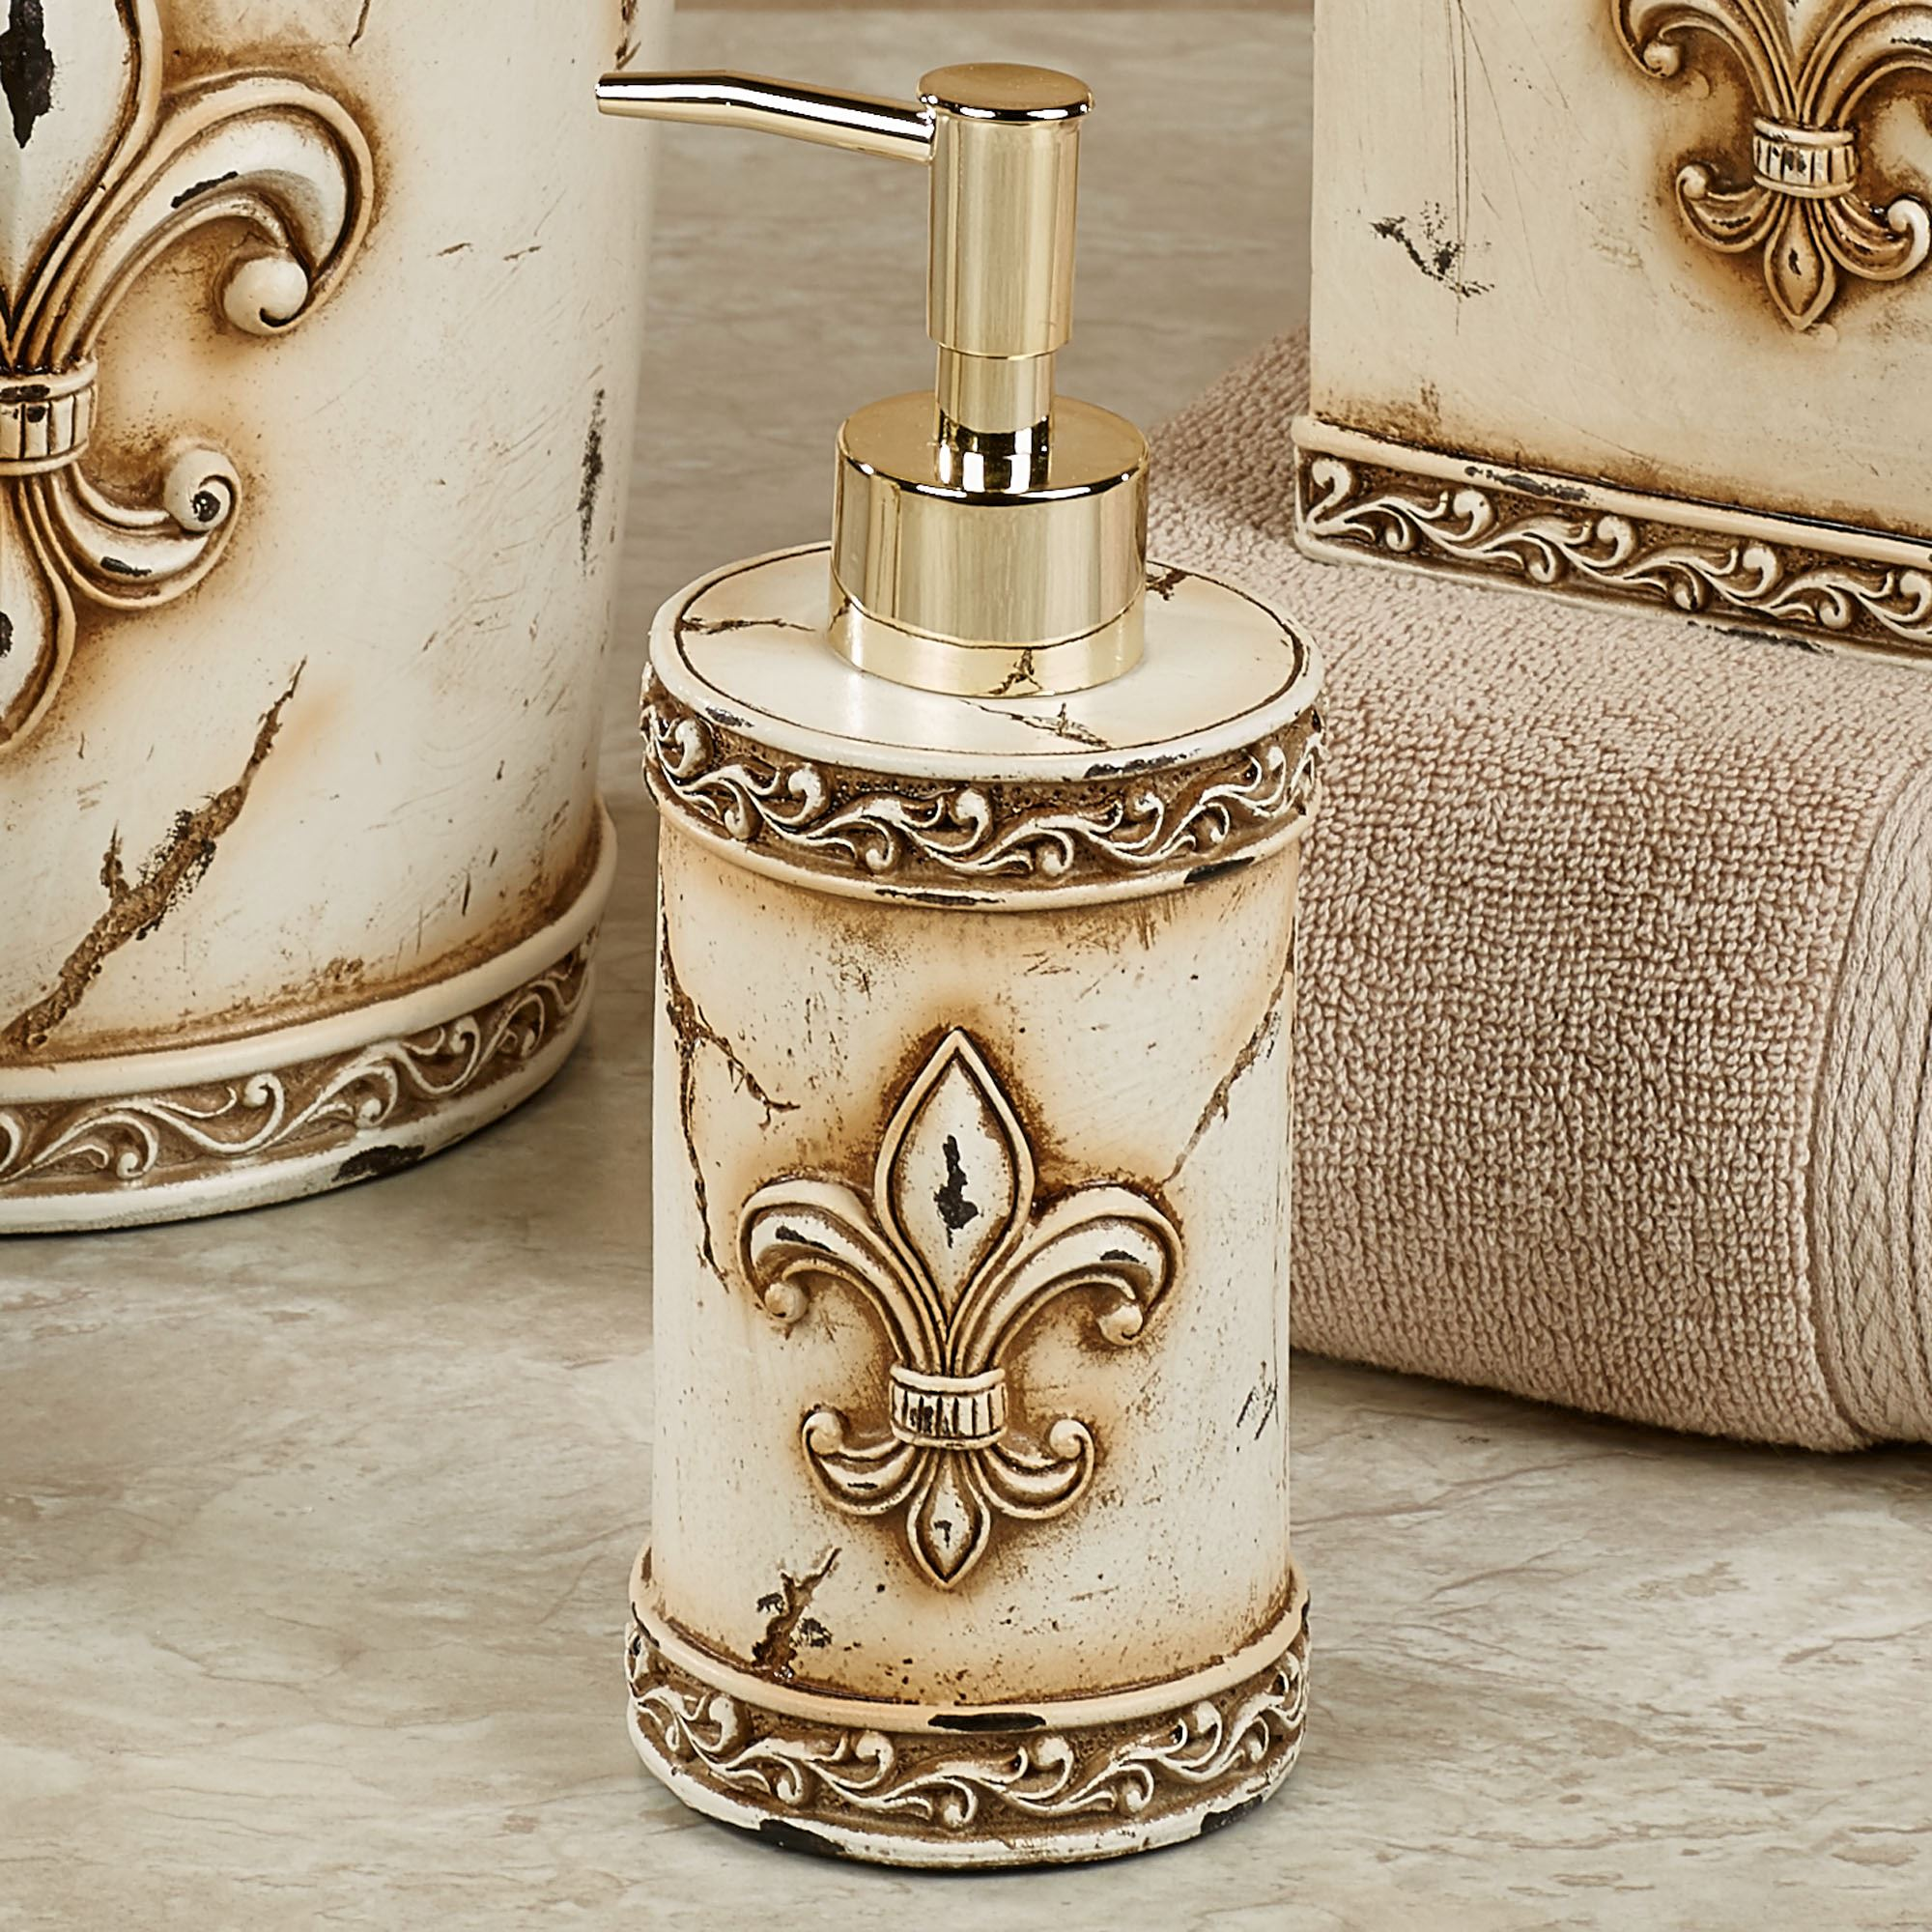 aged stone fleur de lis bath accessories. Black Bedroom Furniture Sets. Home Design Ideas